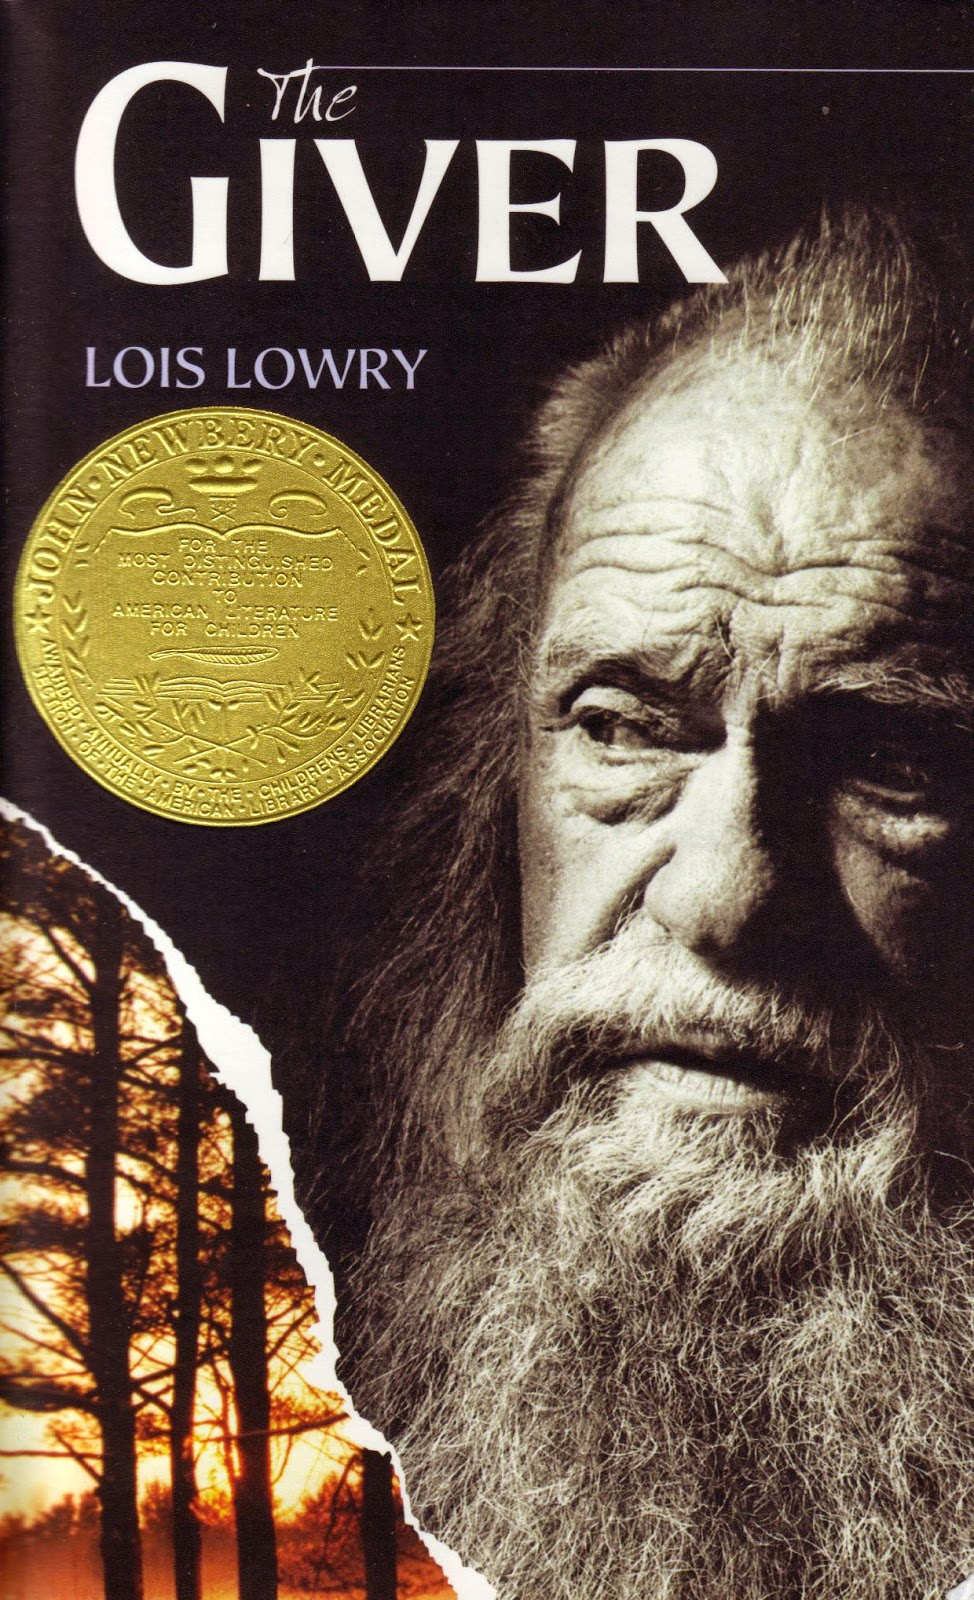 the giver quartet book 1 cover hd large paperback edition hardcover by lois lowry dystopian middle grade young adult 1993